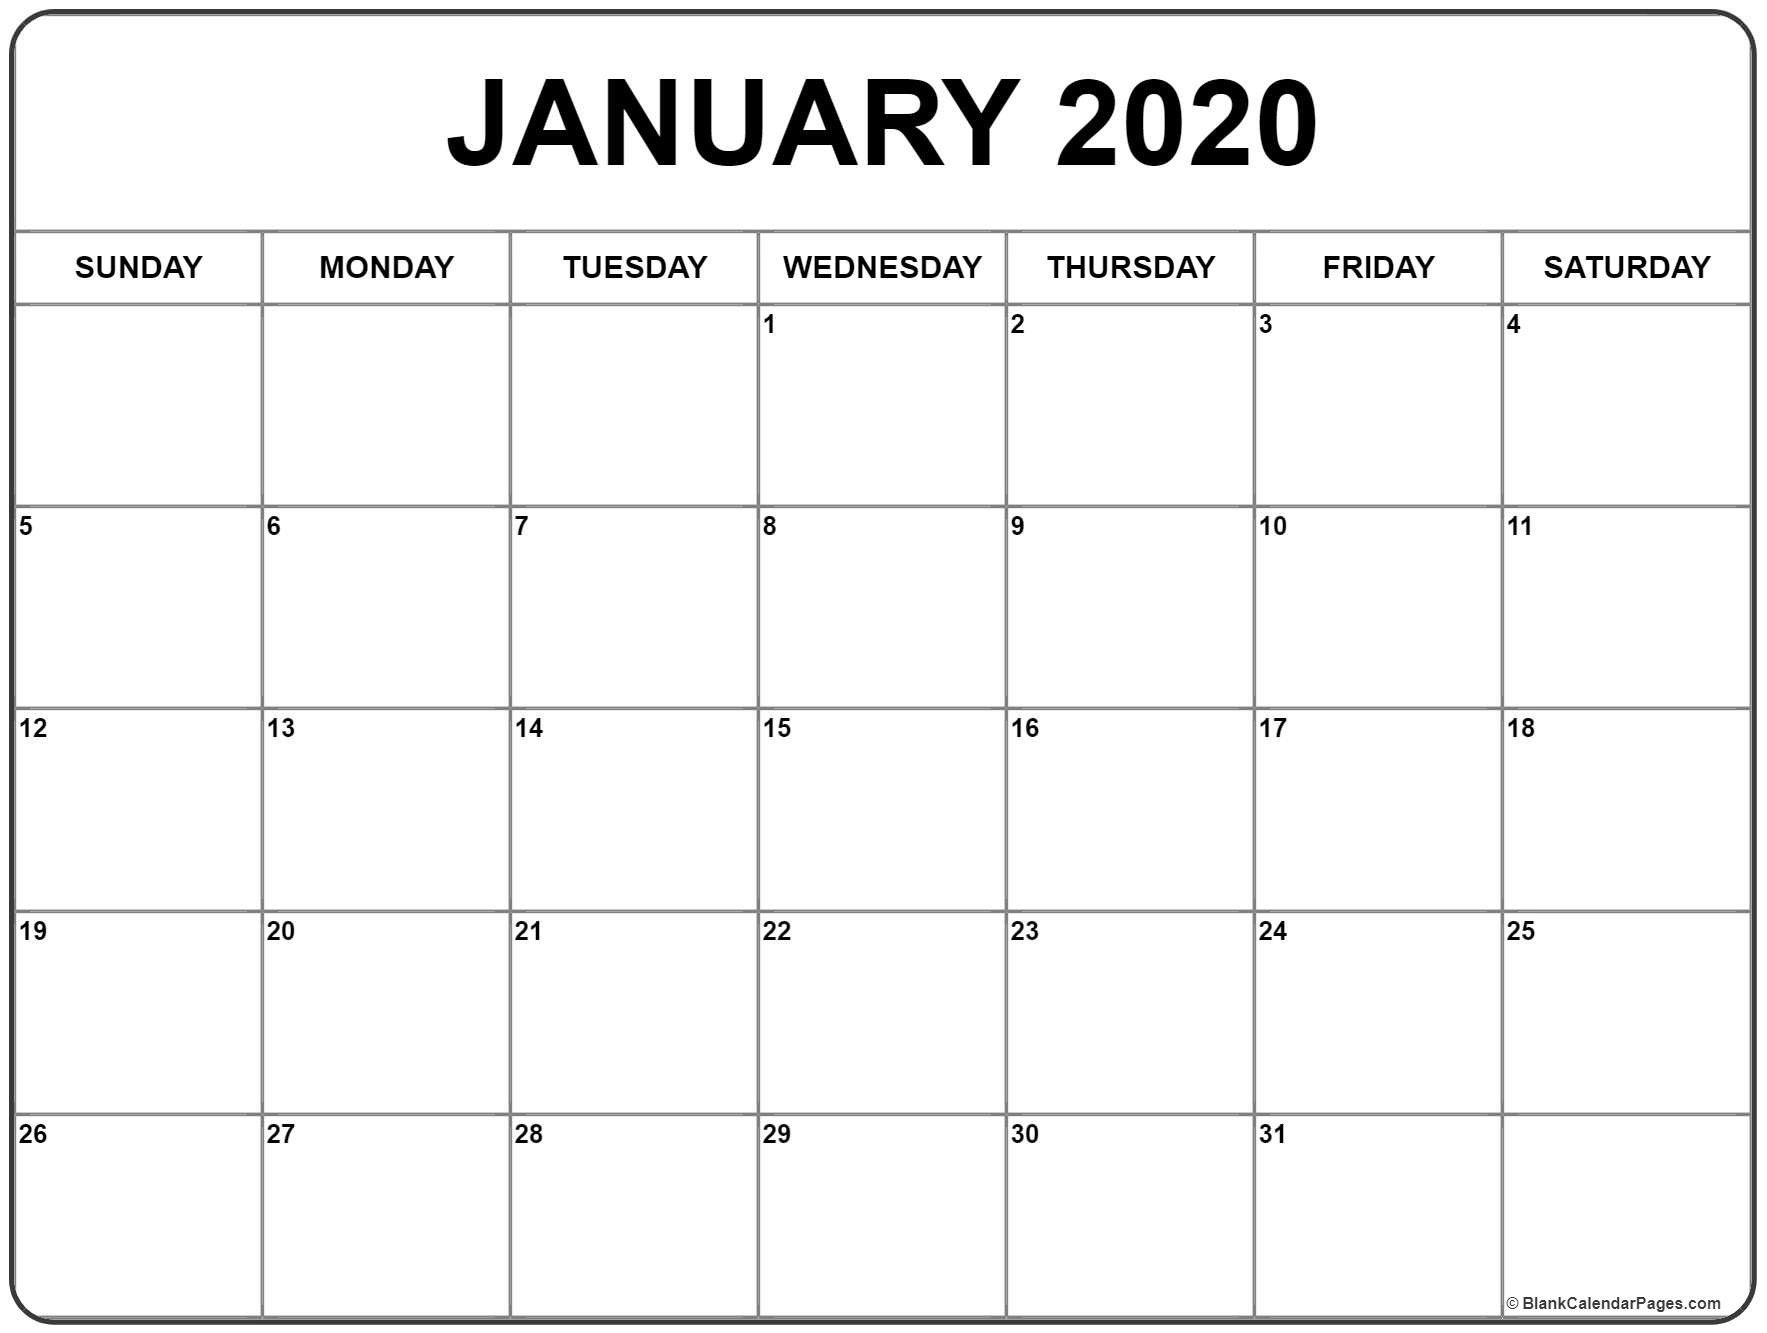 January 2020 Calendar 56 Templates Of 2020 Printable January throughout Printable 2020 Calendar Monthly No Download Free Excel